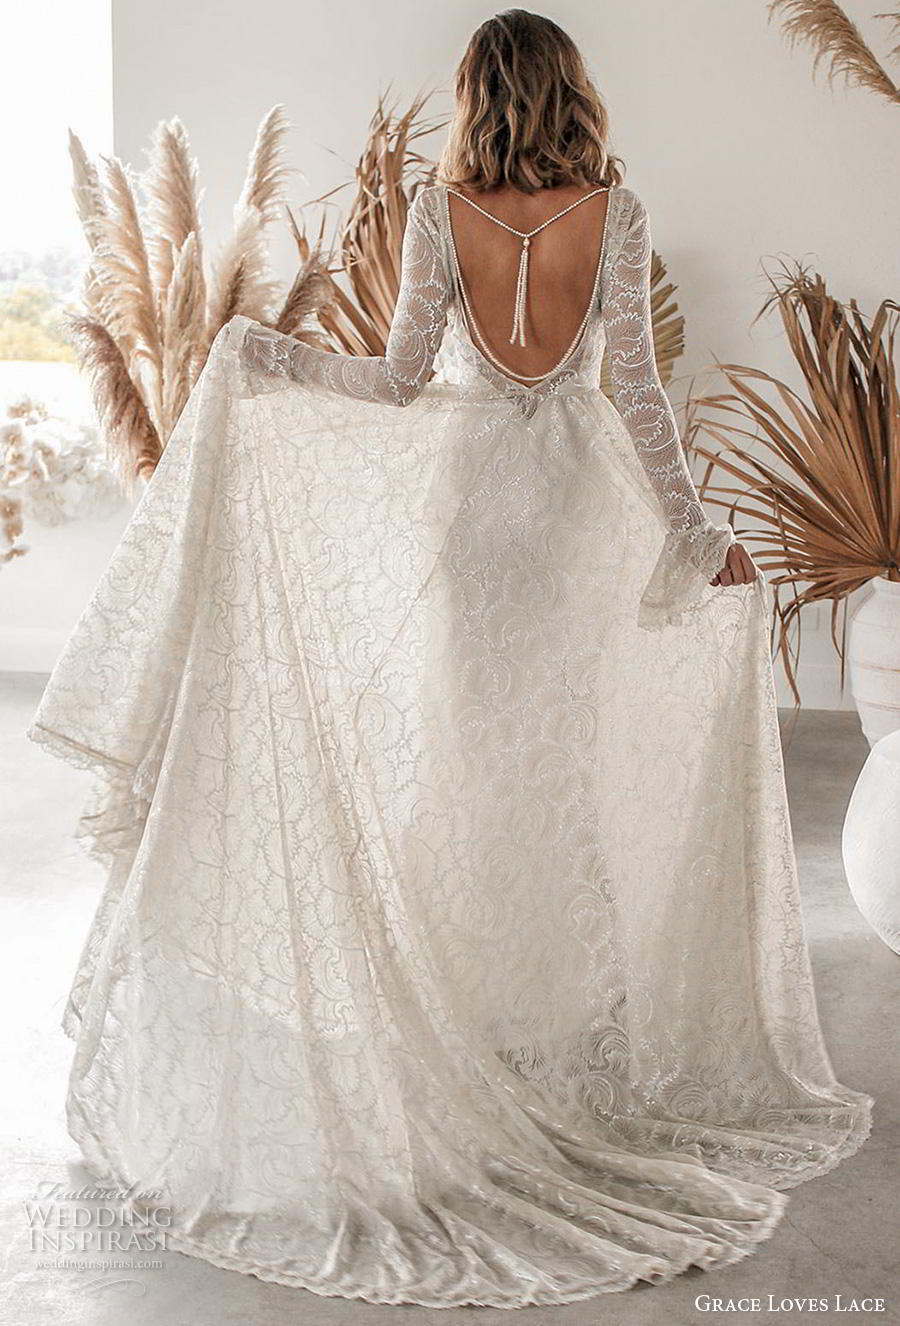 grace love lace 2020 bridal long poet sleeves deep v neck full embellishment elegant champagne color a  line wedding dress backless scoop back chapel train (3) bv